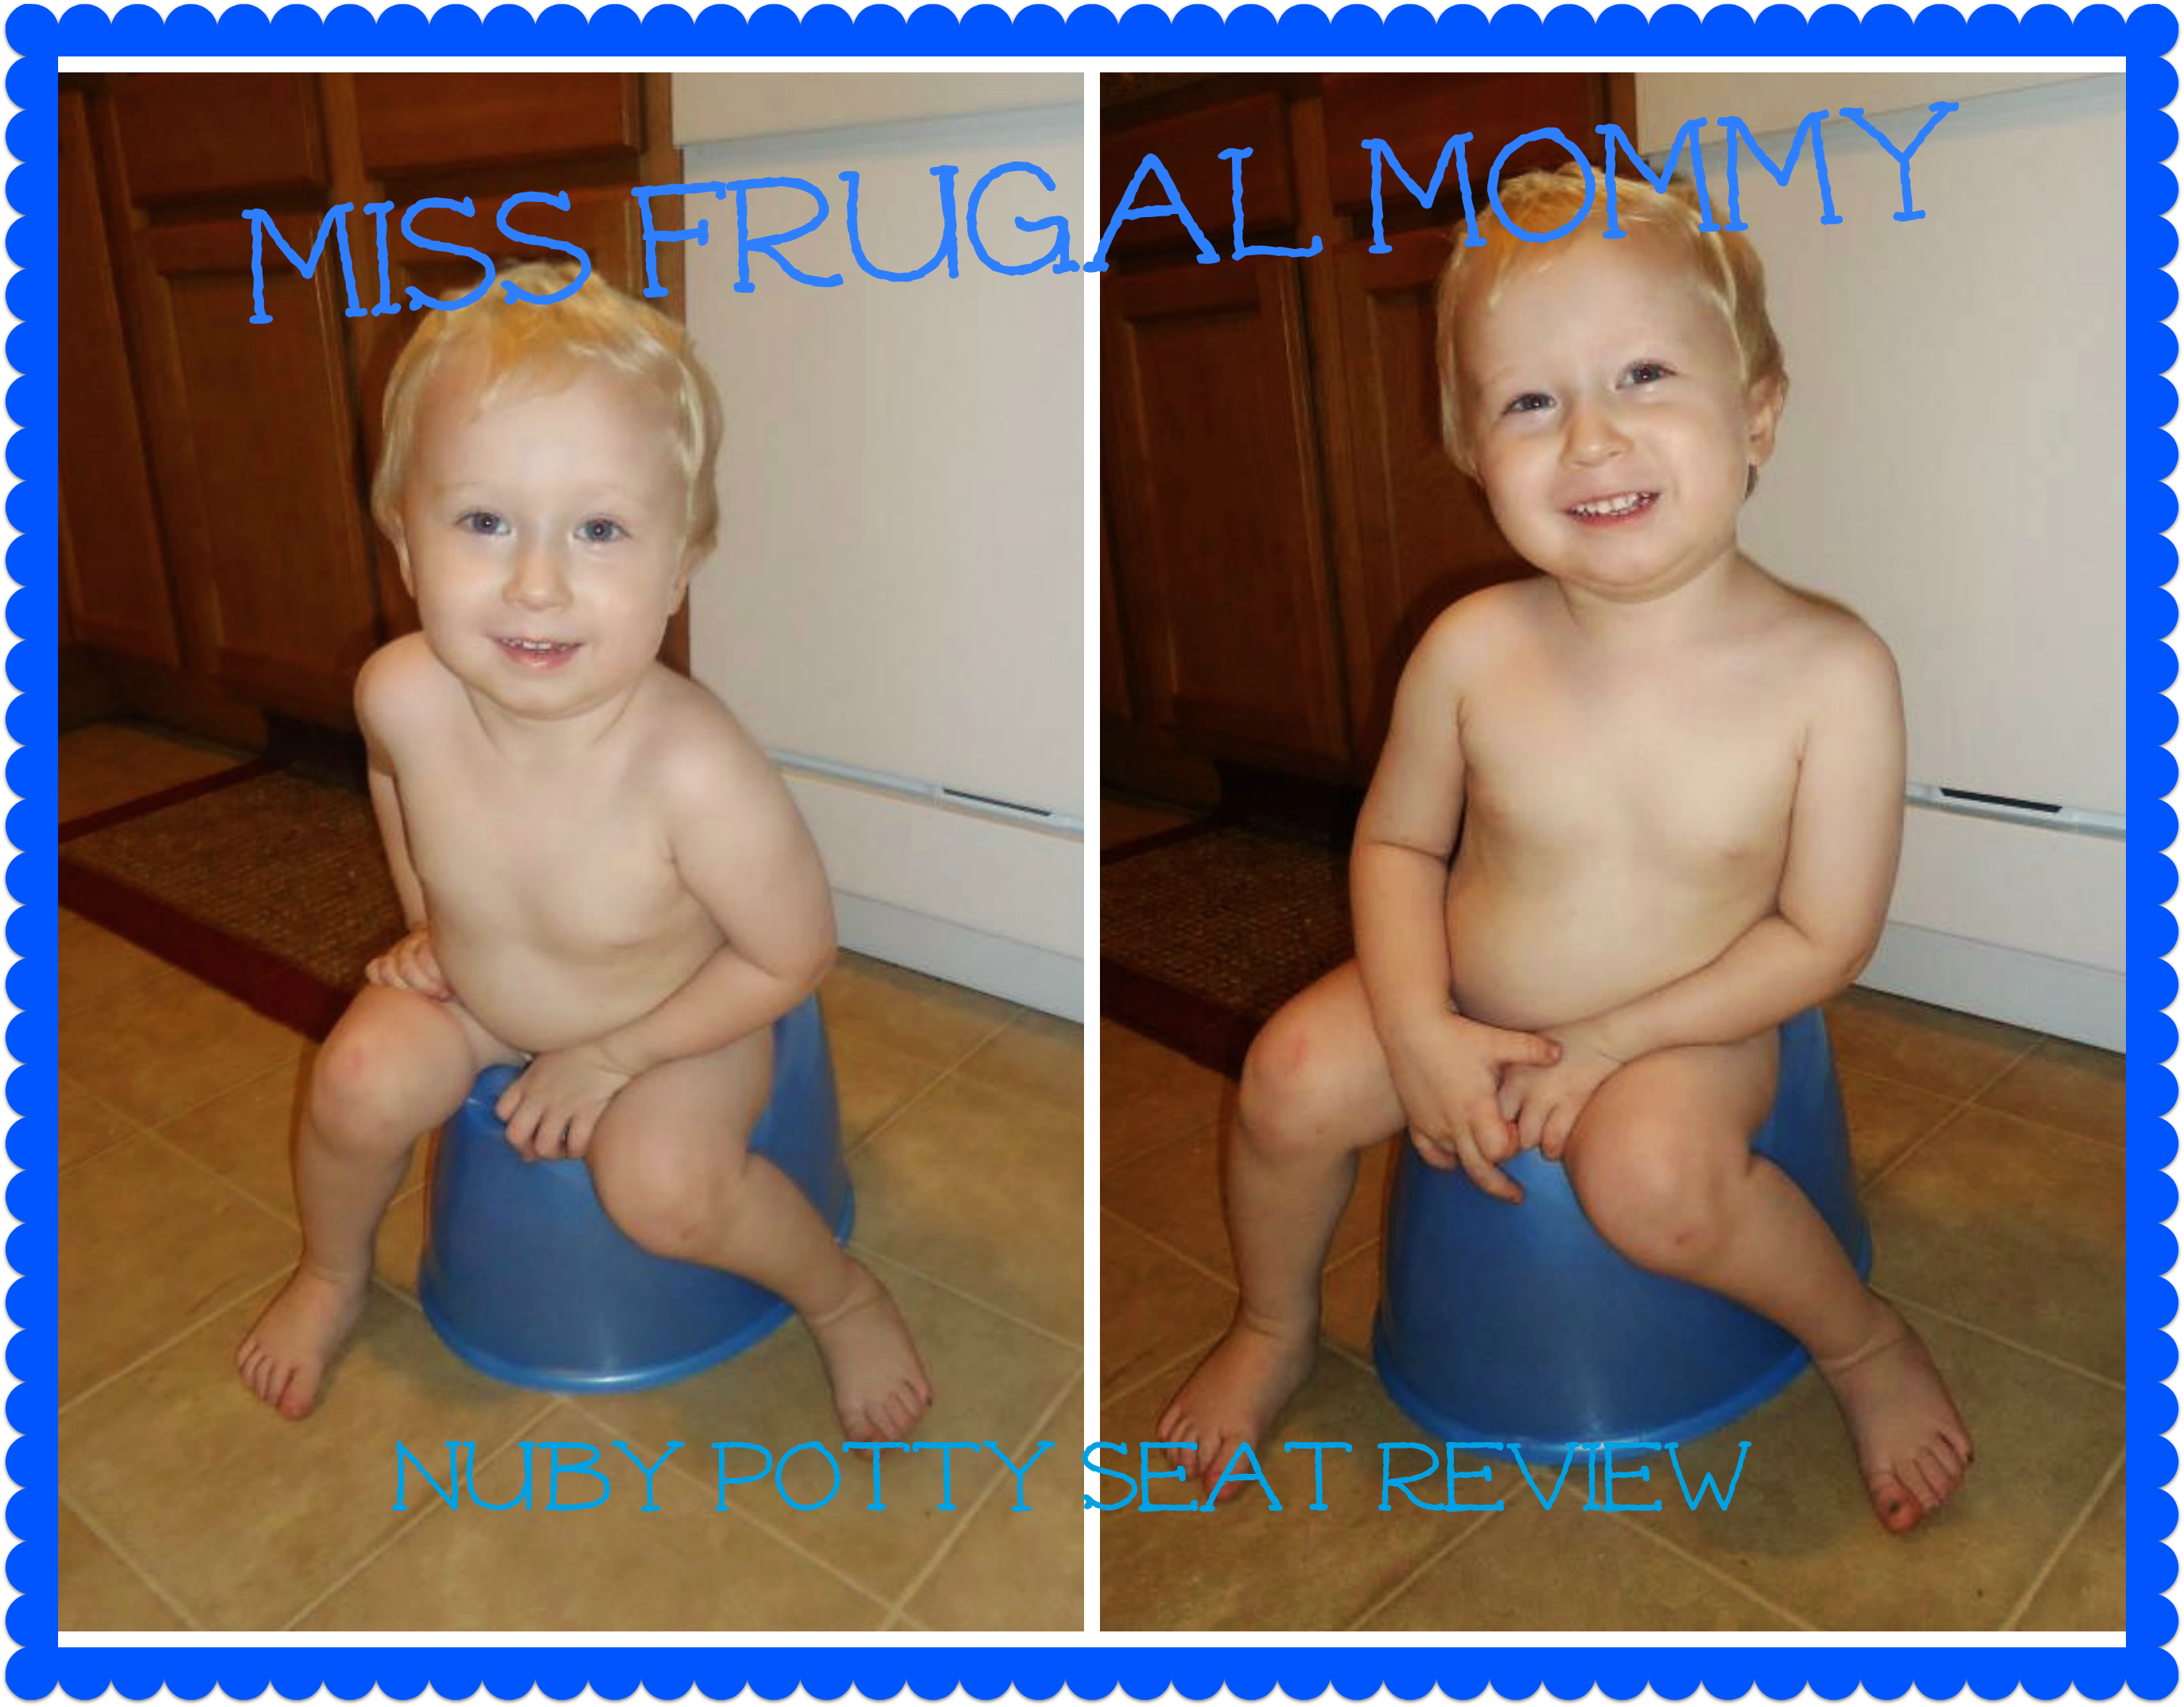 http://missfrugalmommy.com/wp-content/uploads/2013/07/potty2.png